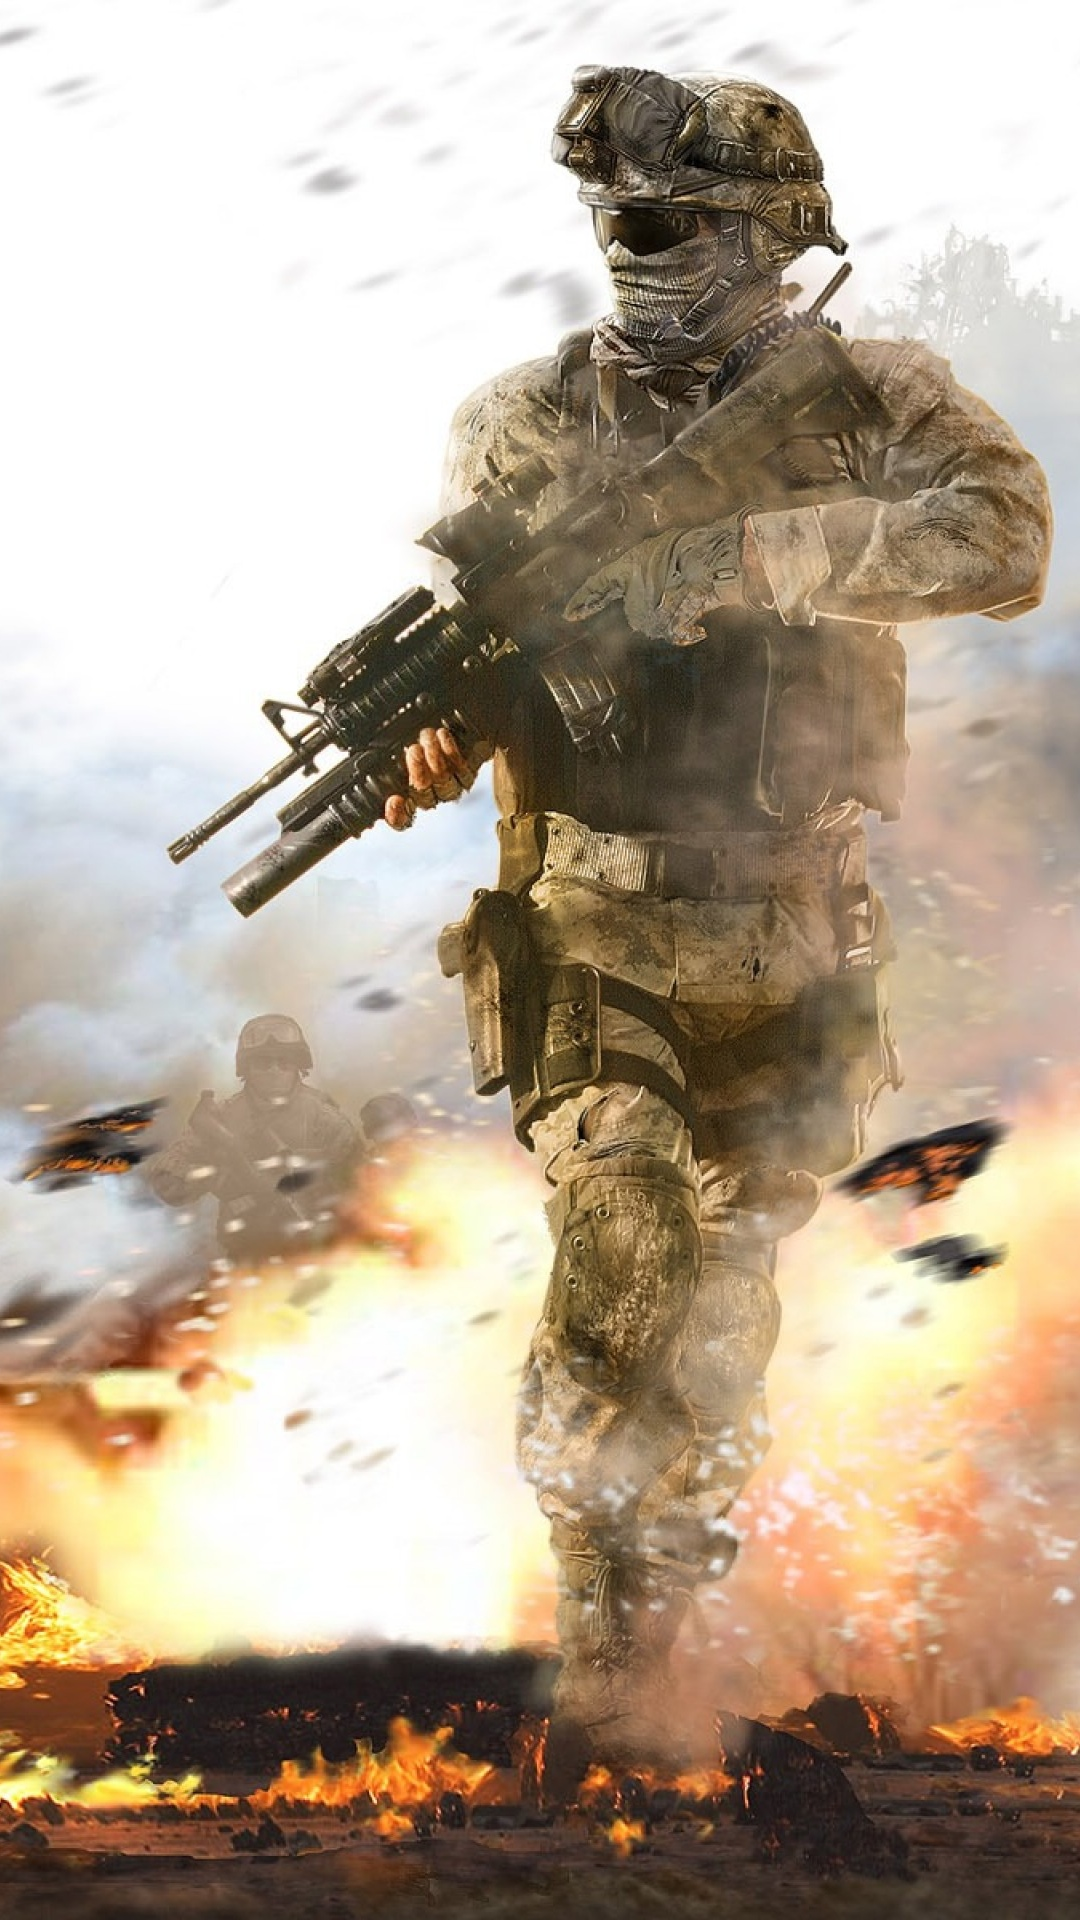 Backgrounds to Army Sol rs Rifles and Weapons